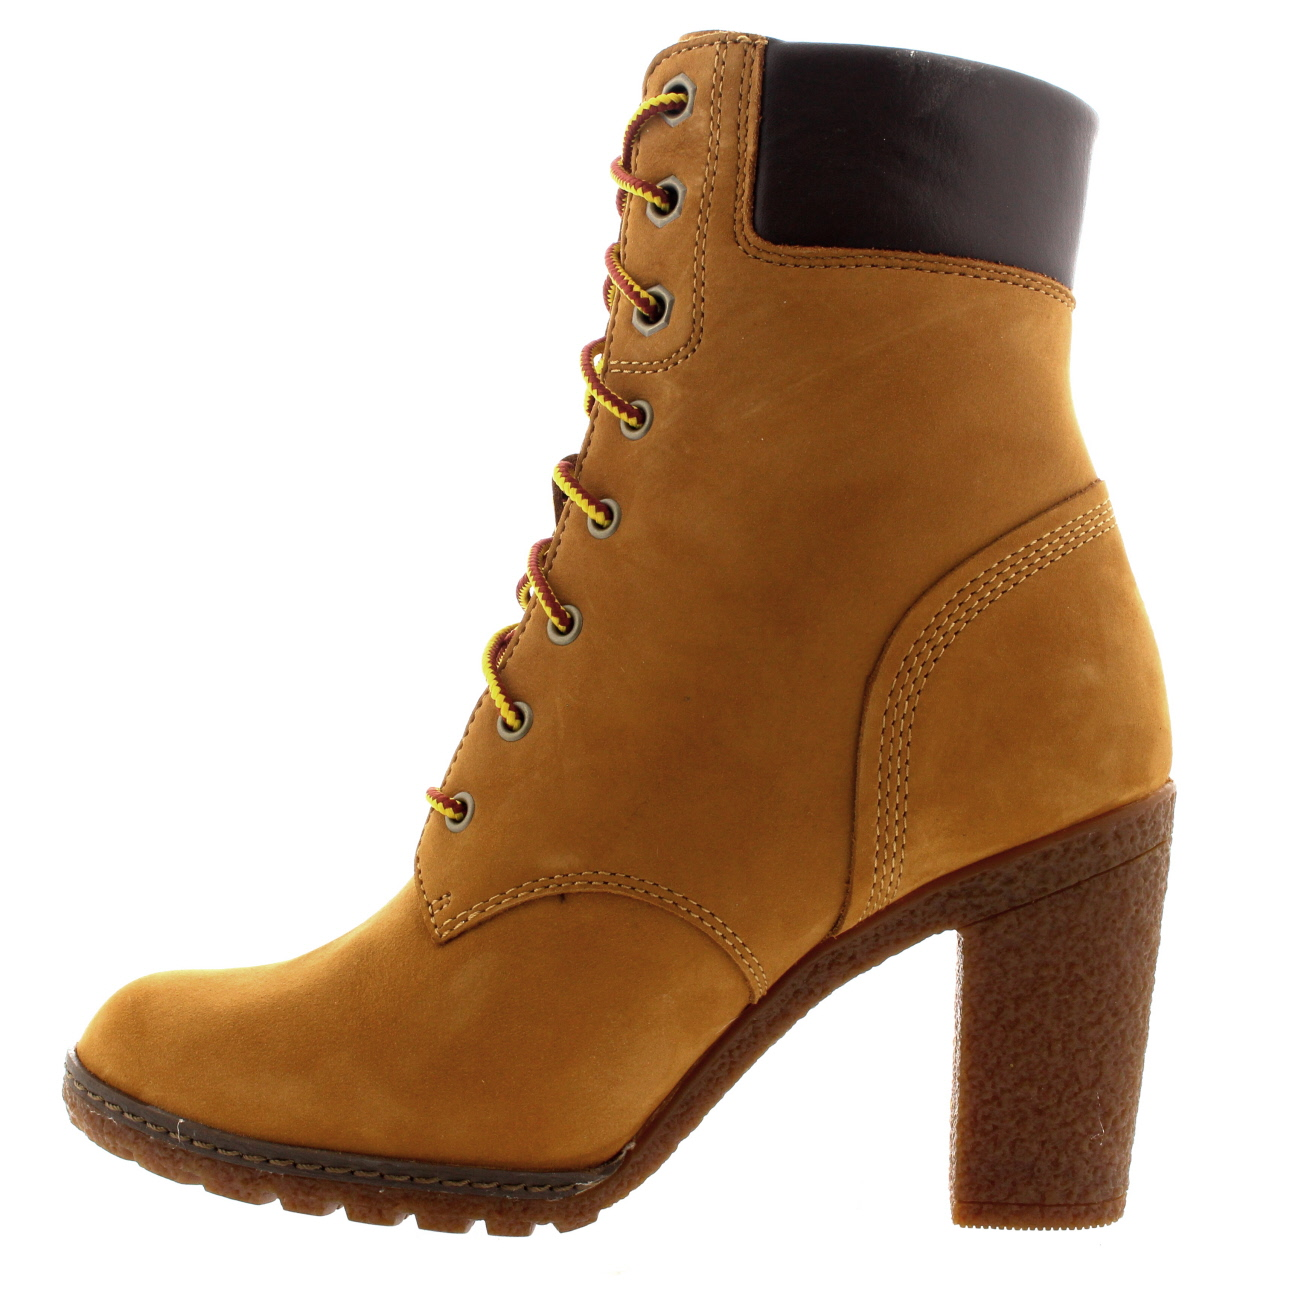 Unique Womens Timberland Glancy 6 Inch Brown Lace Up Heel Boots Shoes 8430A | EBay